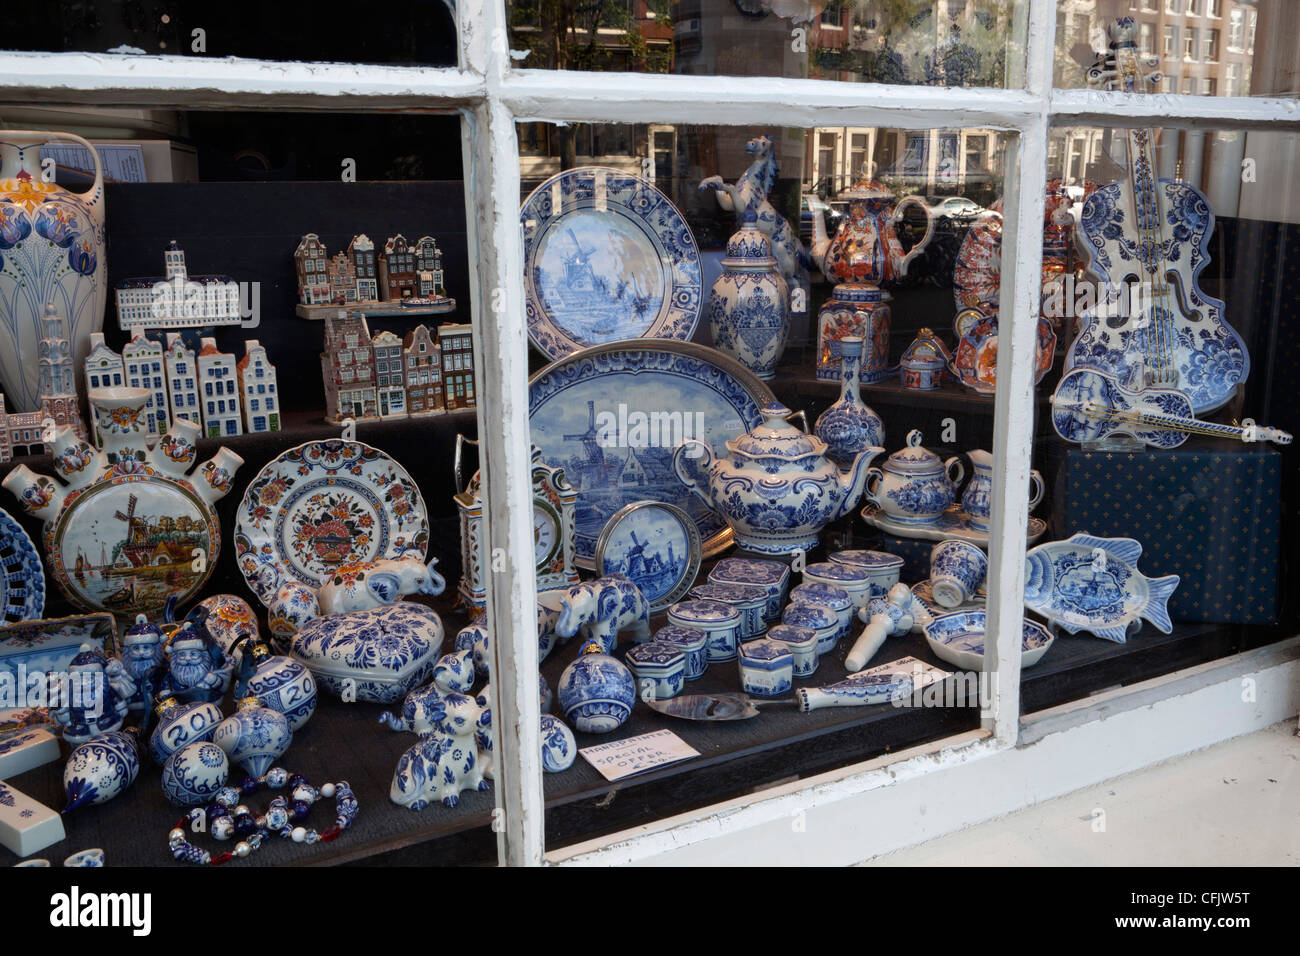 Delftware in shop window, Amsterdam, North Holland, The Netherlands, Europe - Stock Image